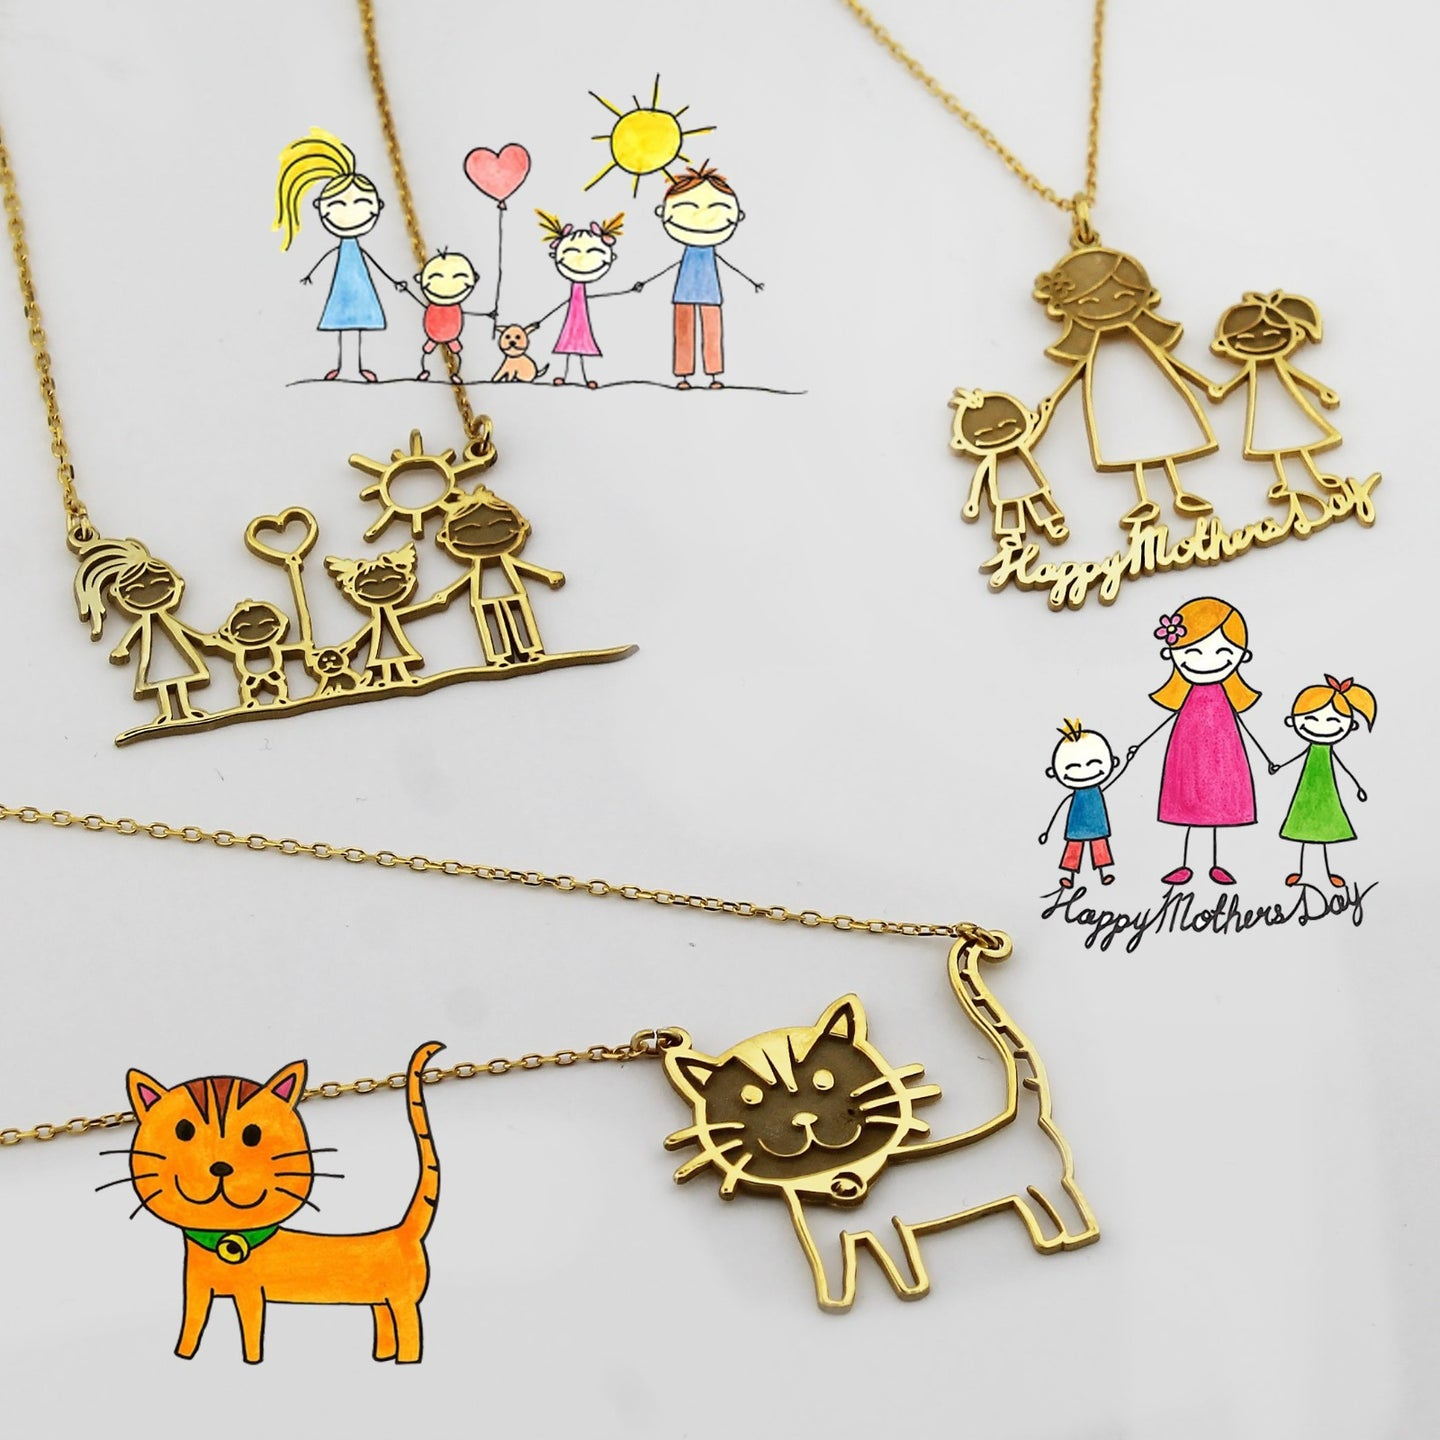 Actual Kids Drawing Necklace  Children Artwork Necklace  Family Memorial Necklace Kid Art Gift  Personalized Necklace  Special Gift for Mom